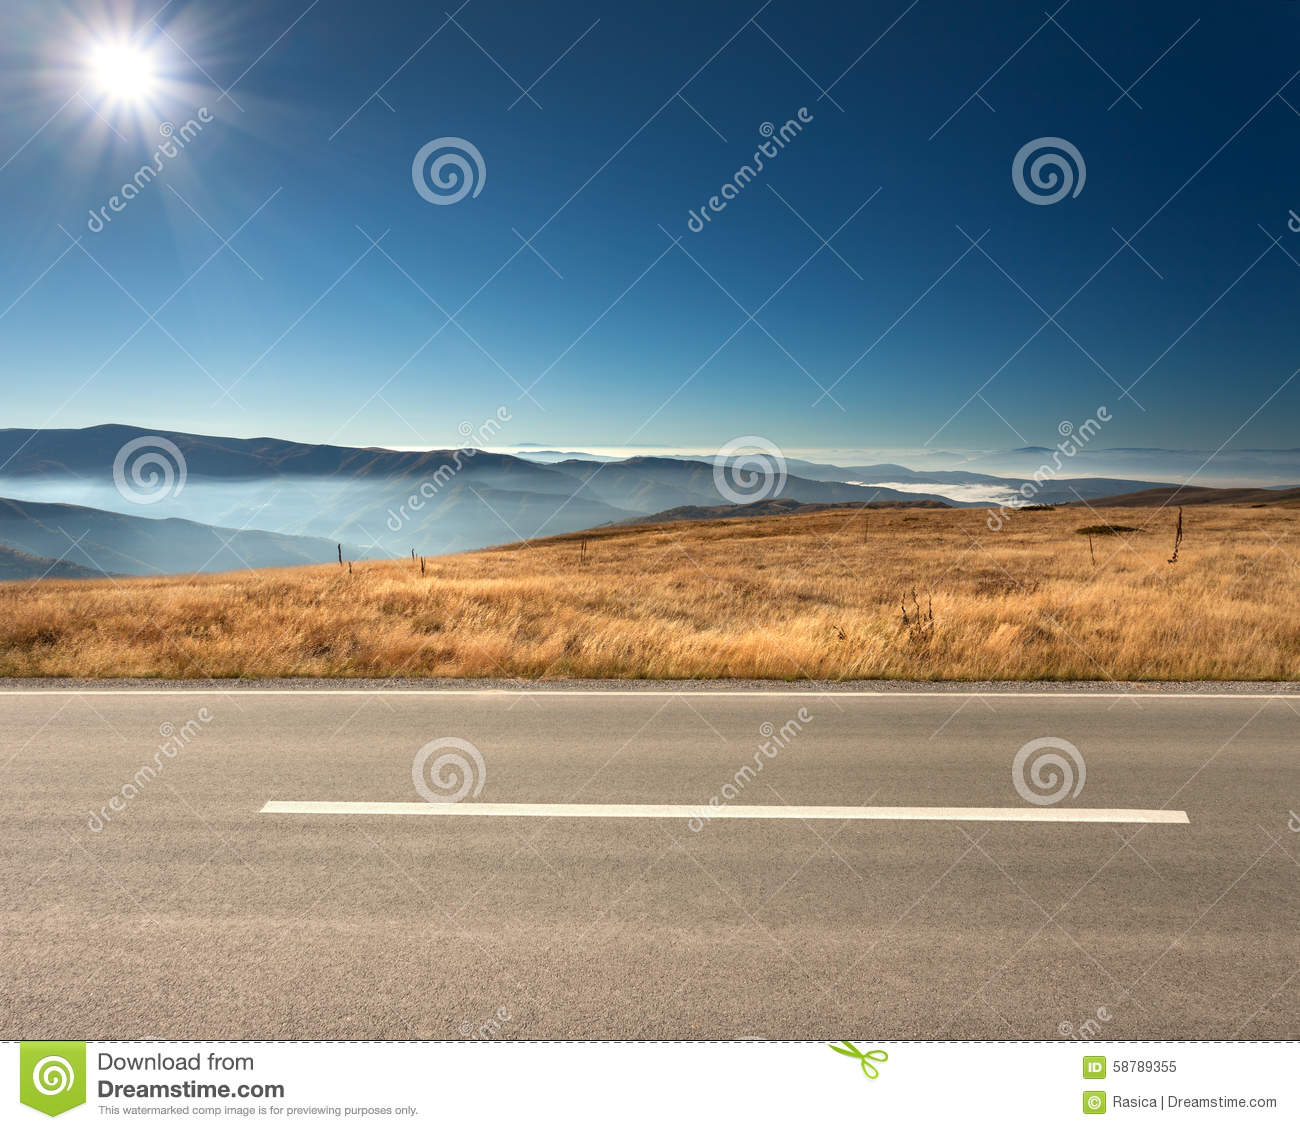 Side View Of Empty Highway In Mountain Range Stock Photo.